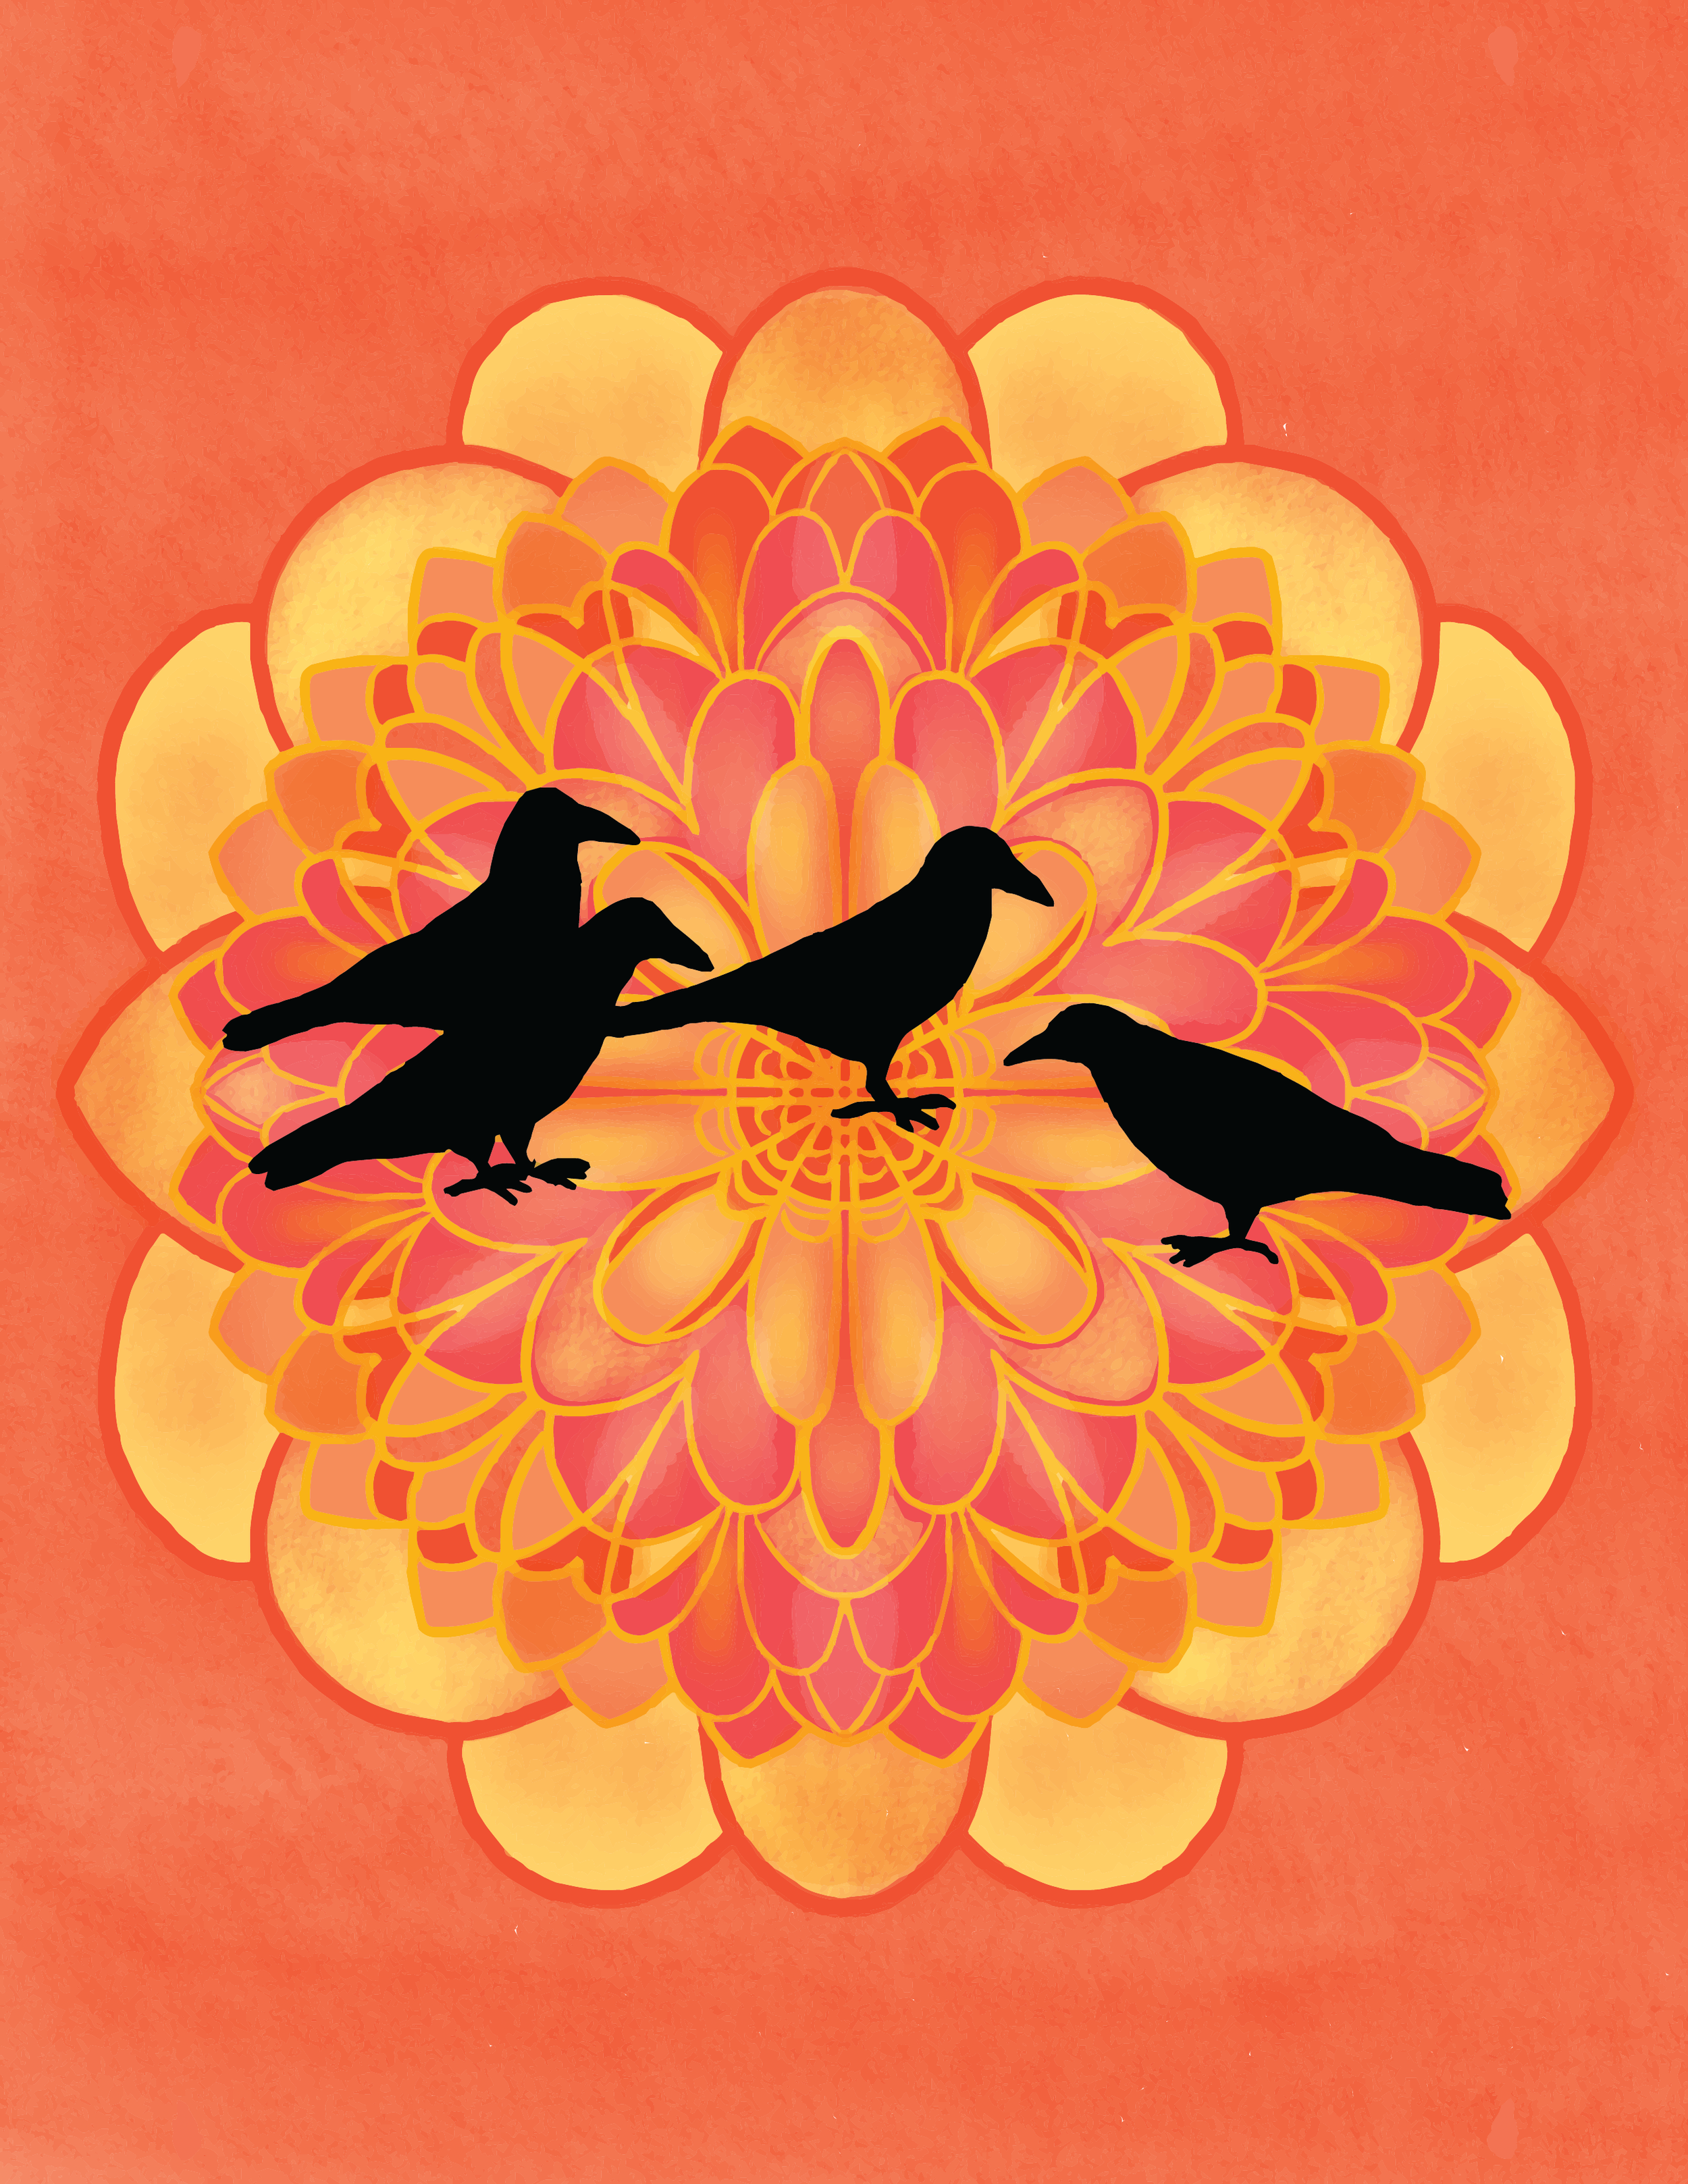 Raven messengers and a marigold mandala - adorn the cover for the autumn issue of Almanac of Seasonal Mindfulness. This issue will offer invitations related to the theme of release, including essays, rituals and poetry about personal harvest, preserving abundance, grief and gratitude, seed gathering and rebalancing.Single issue subscriptions are now available for pre-order. (If you already subscribed to the full-year, the autumn issue is included in your subscription.)The fall issue will go live on Autumn Equinox, September 23rd.